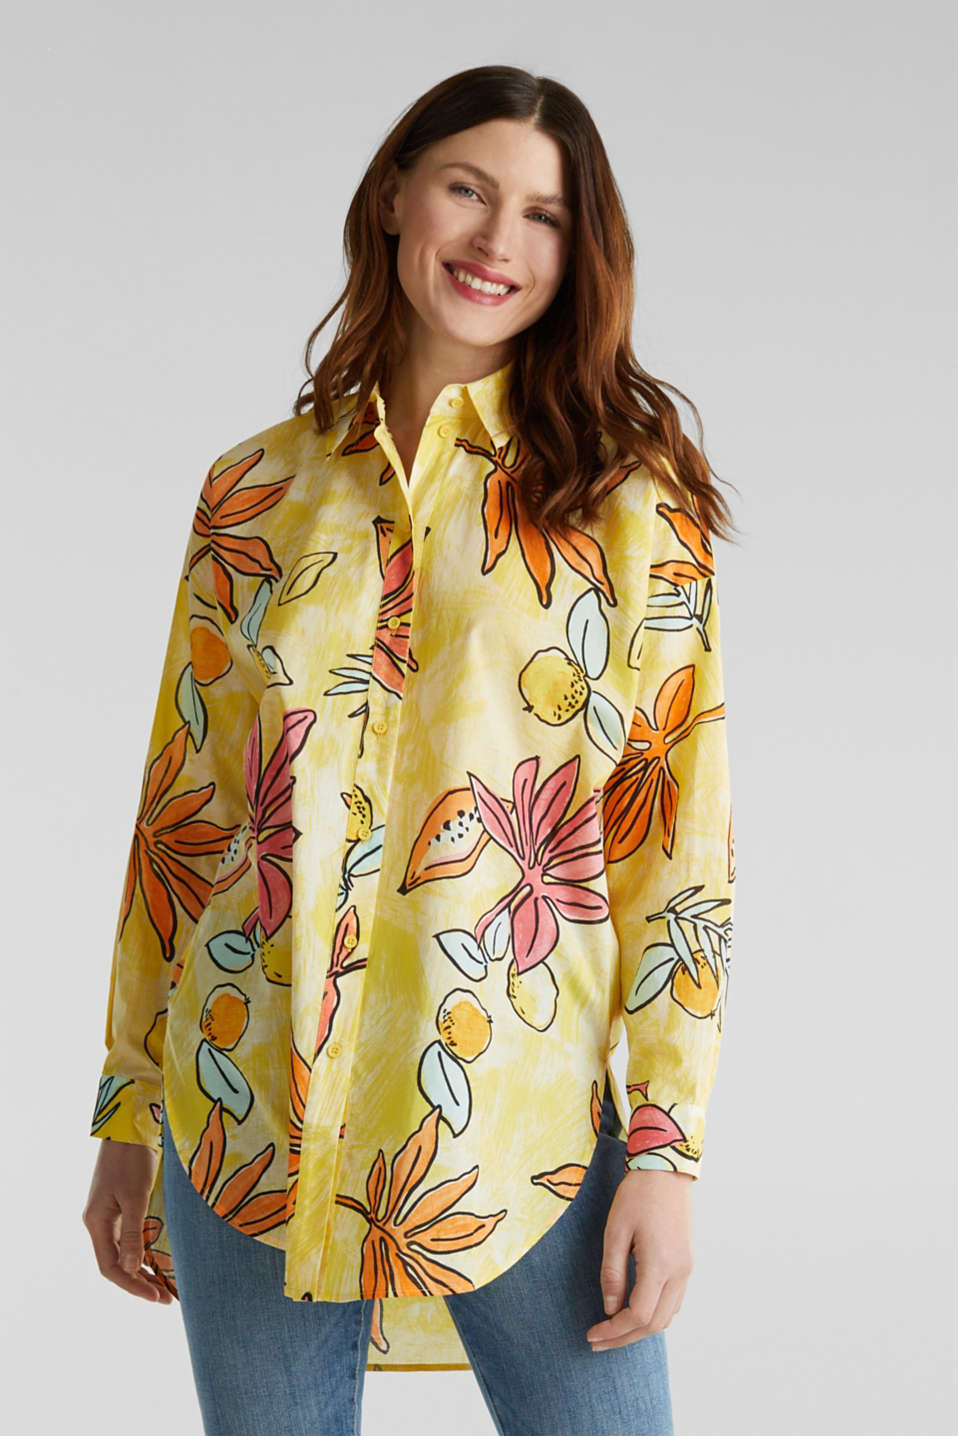 Longbluse mit Print, 100% Baumwolle, BRIGHT YELLOW 4, detail image number 5